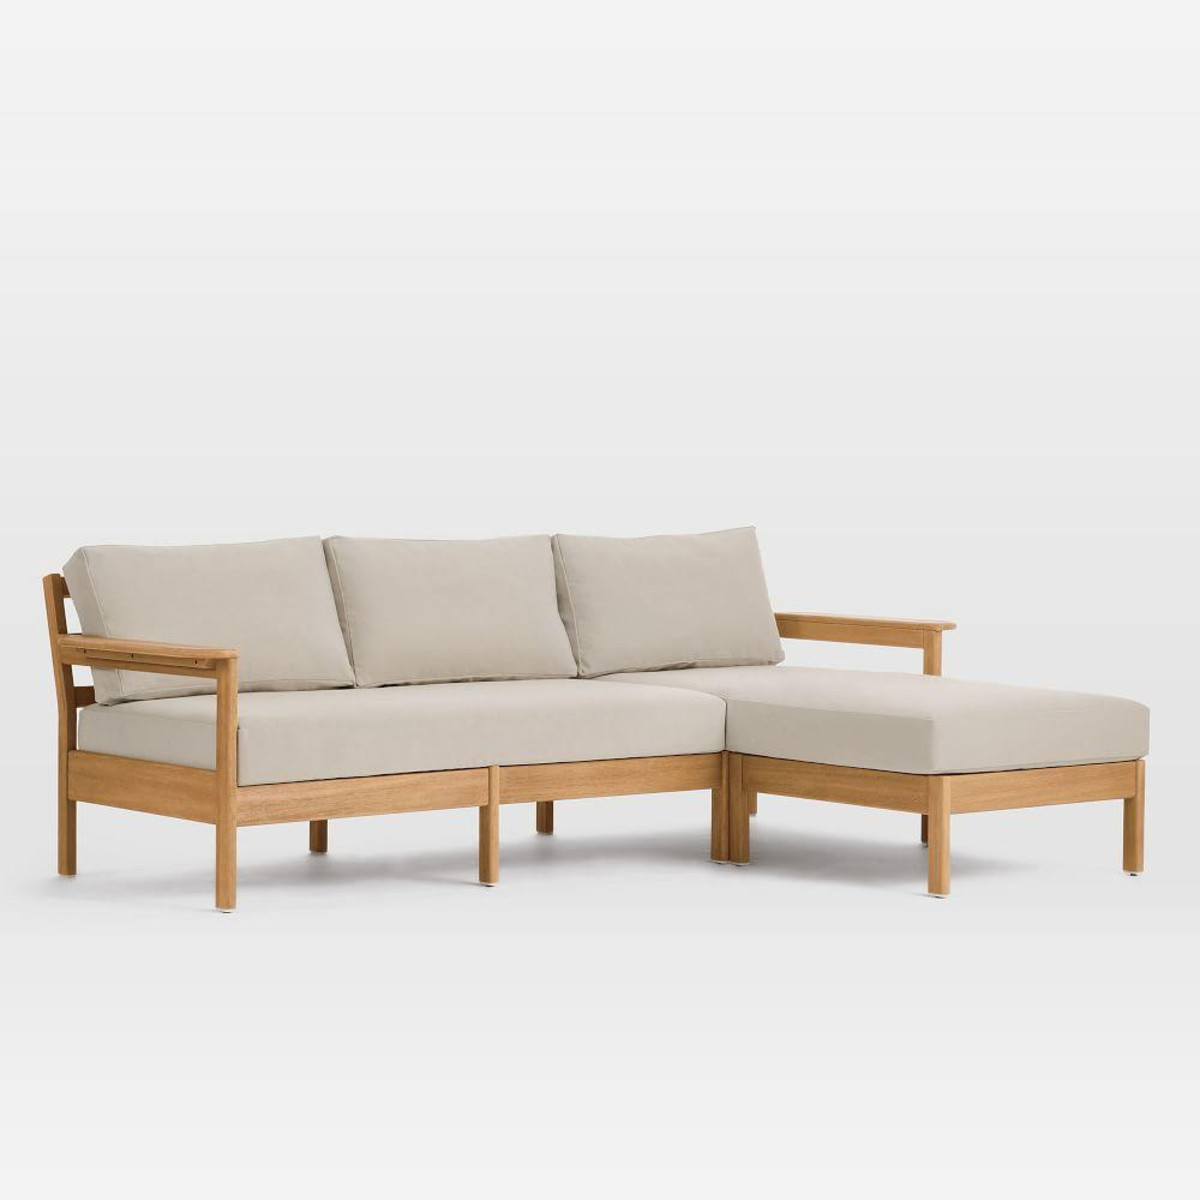 playa-outdoor-reversible-sectional-h4126-alt3_imgz-2